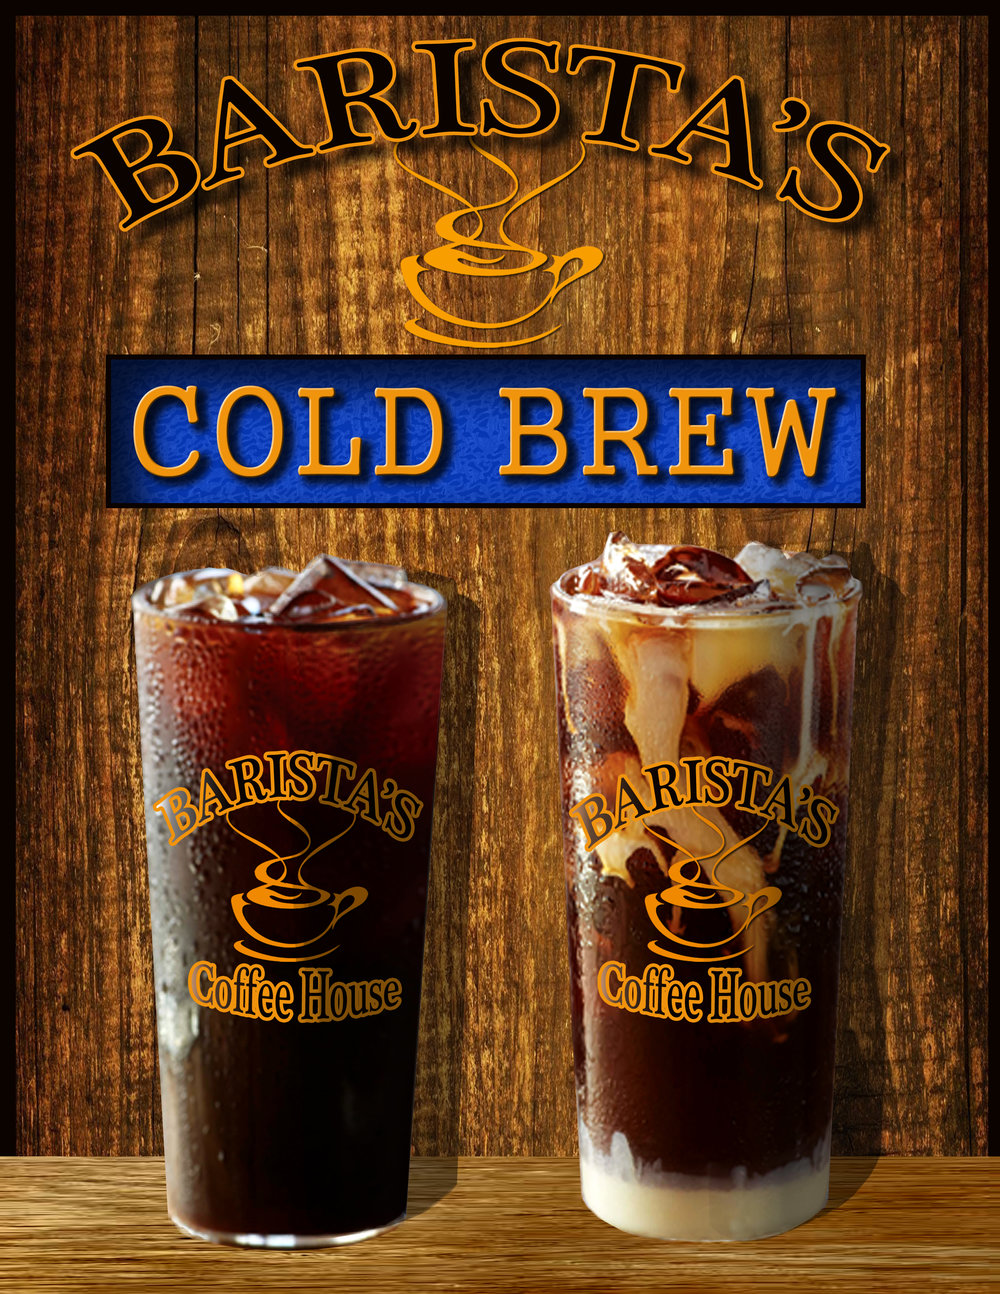 Barista's Cold Brew is Brewed for 24 hrs at room temp creating a smooth taste that is low in acidity.